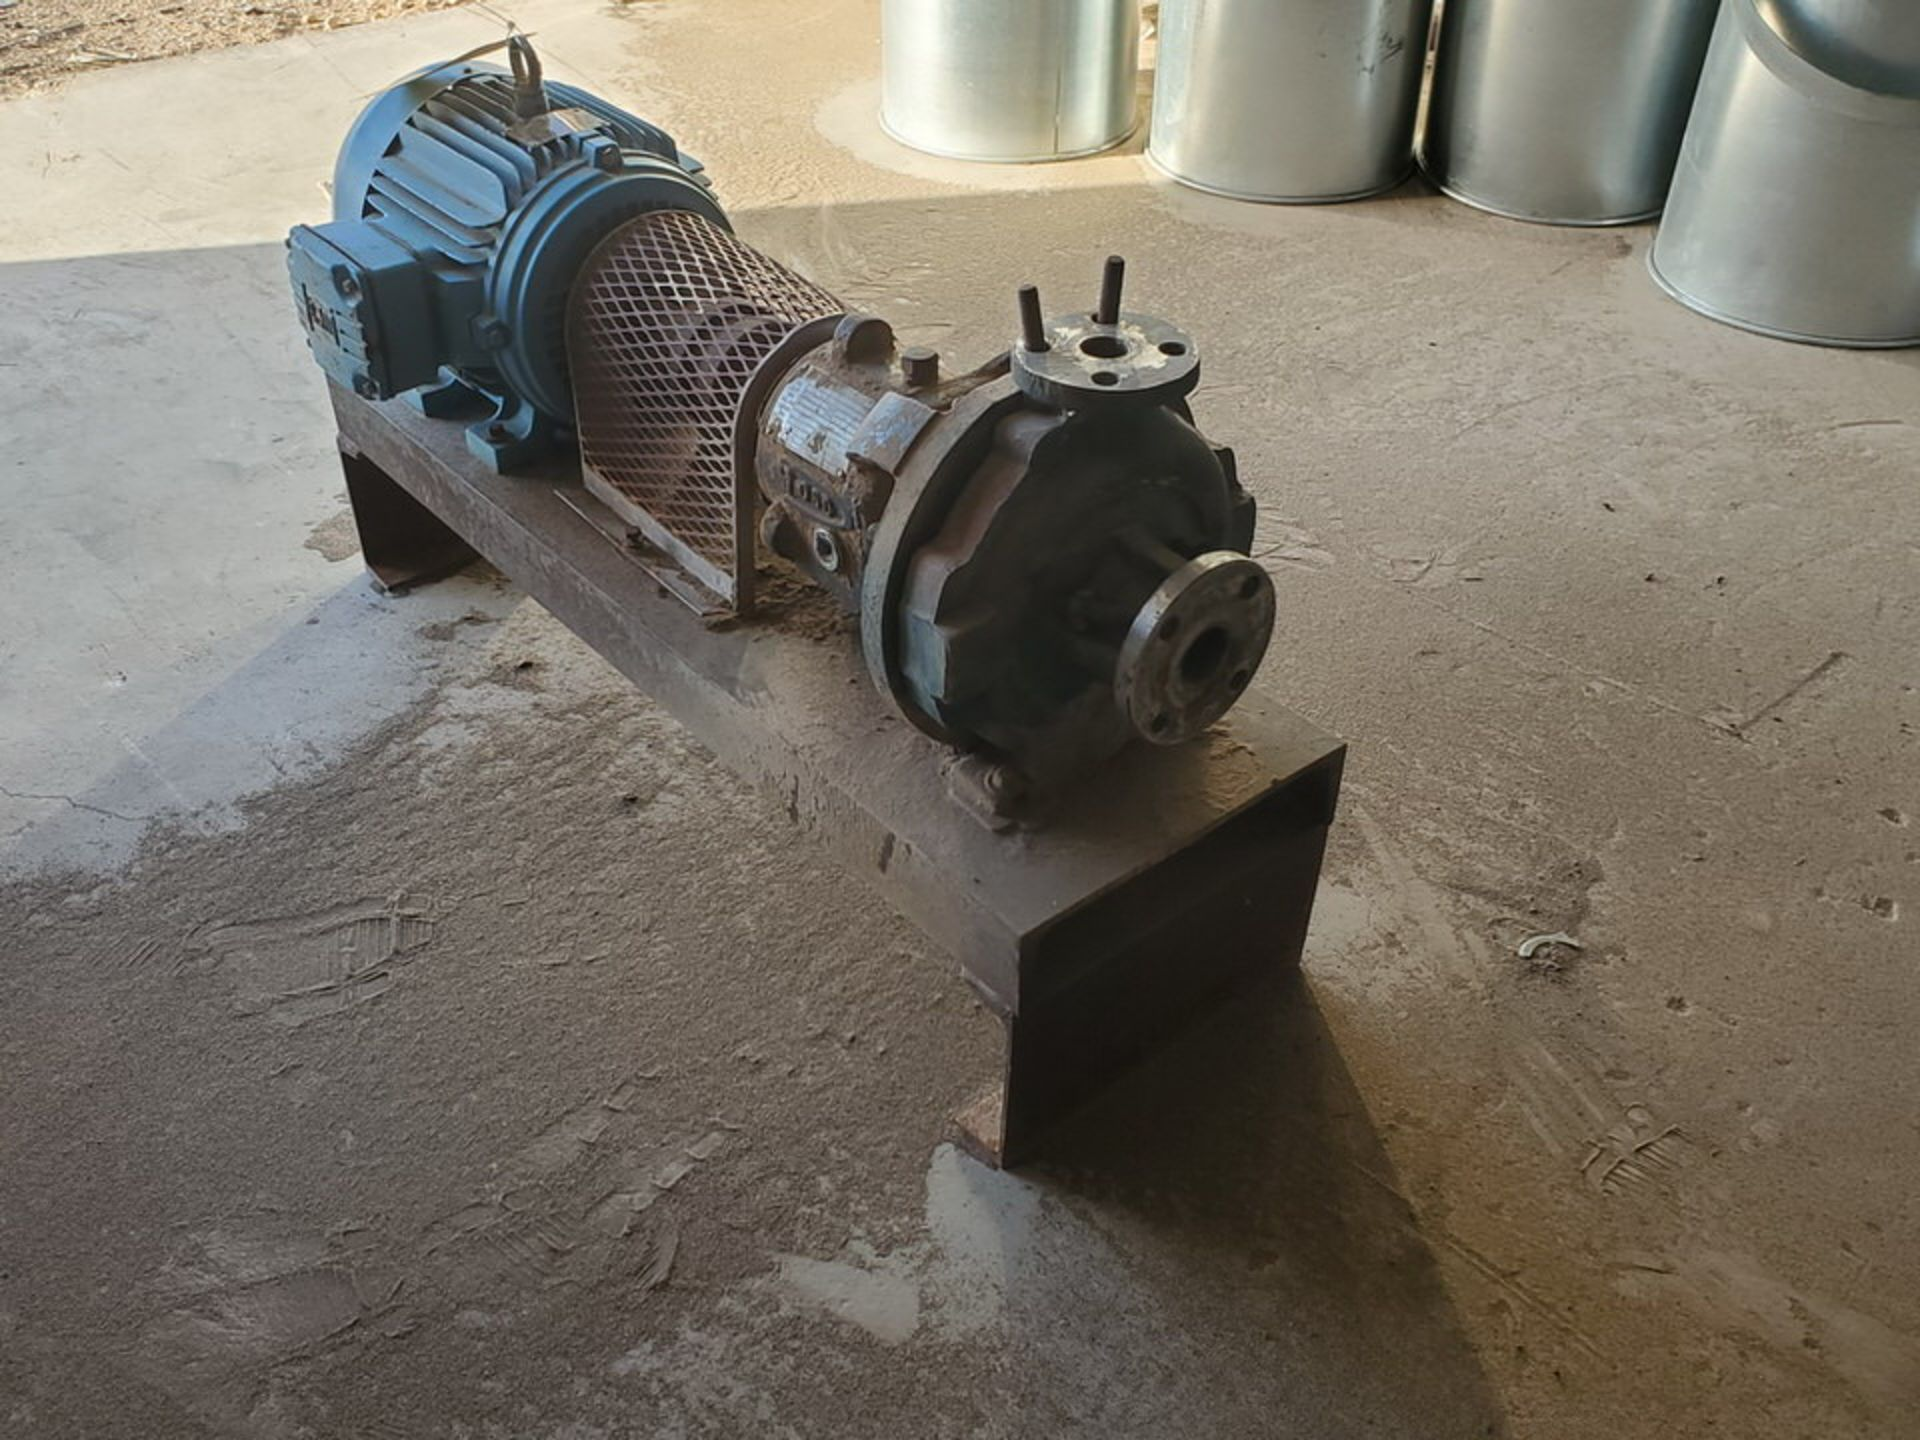 American-Marsh Pumps 1L1x1.5-6RV OSD Centrifugal Pump W/ 7.5HP Weg Motor - Image 4 of 9